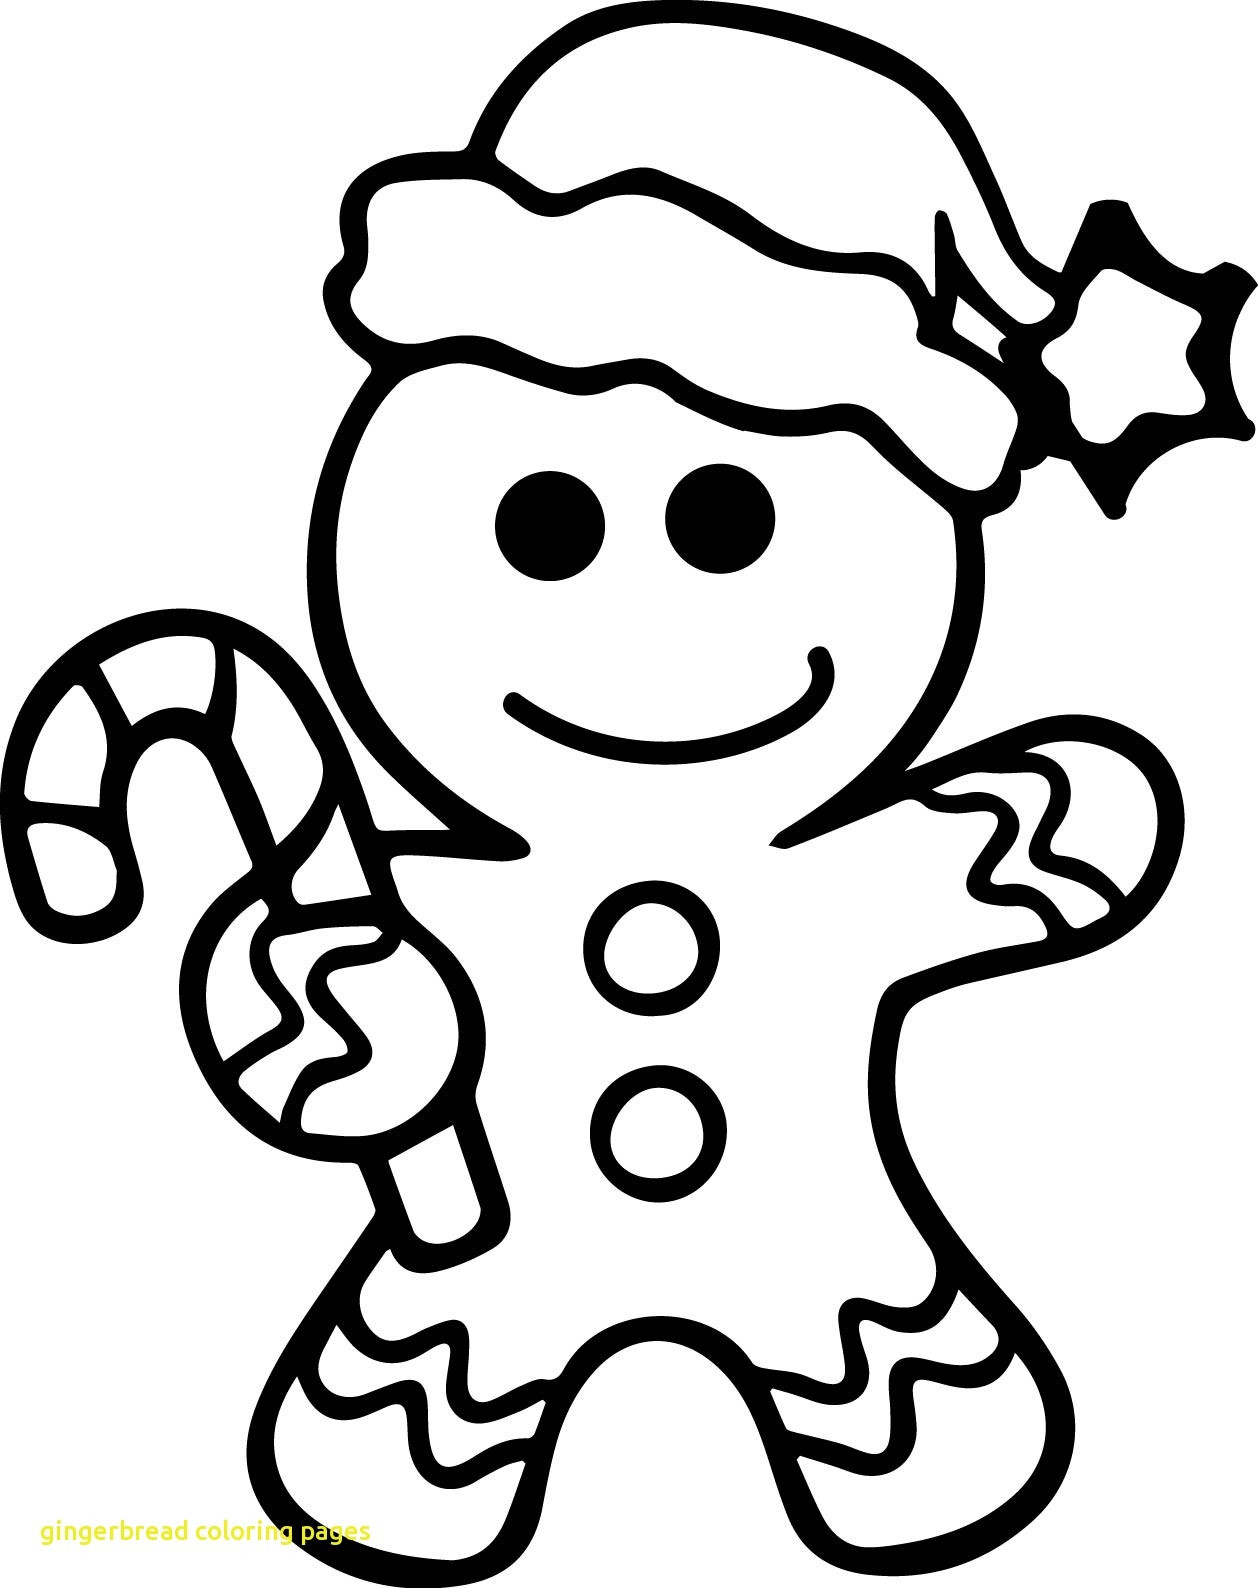 Christmas Coloring Pages Gingerbread Girl With Valuable Ginger Bread Man Page